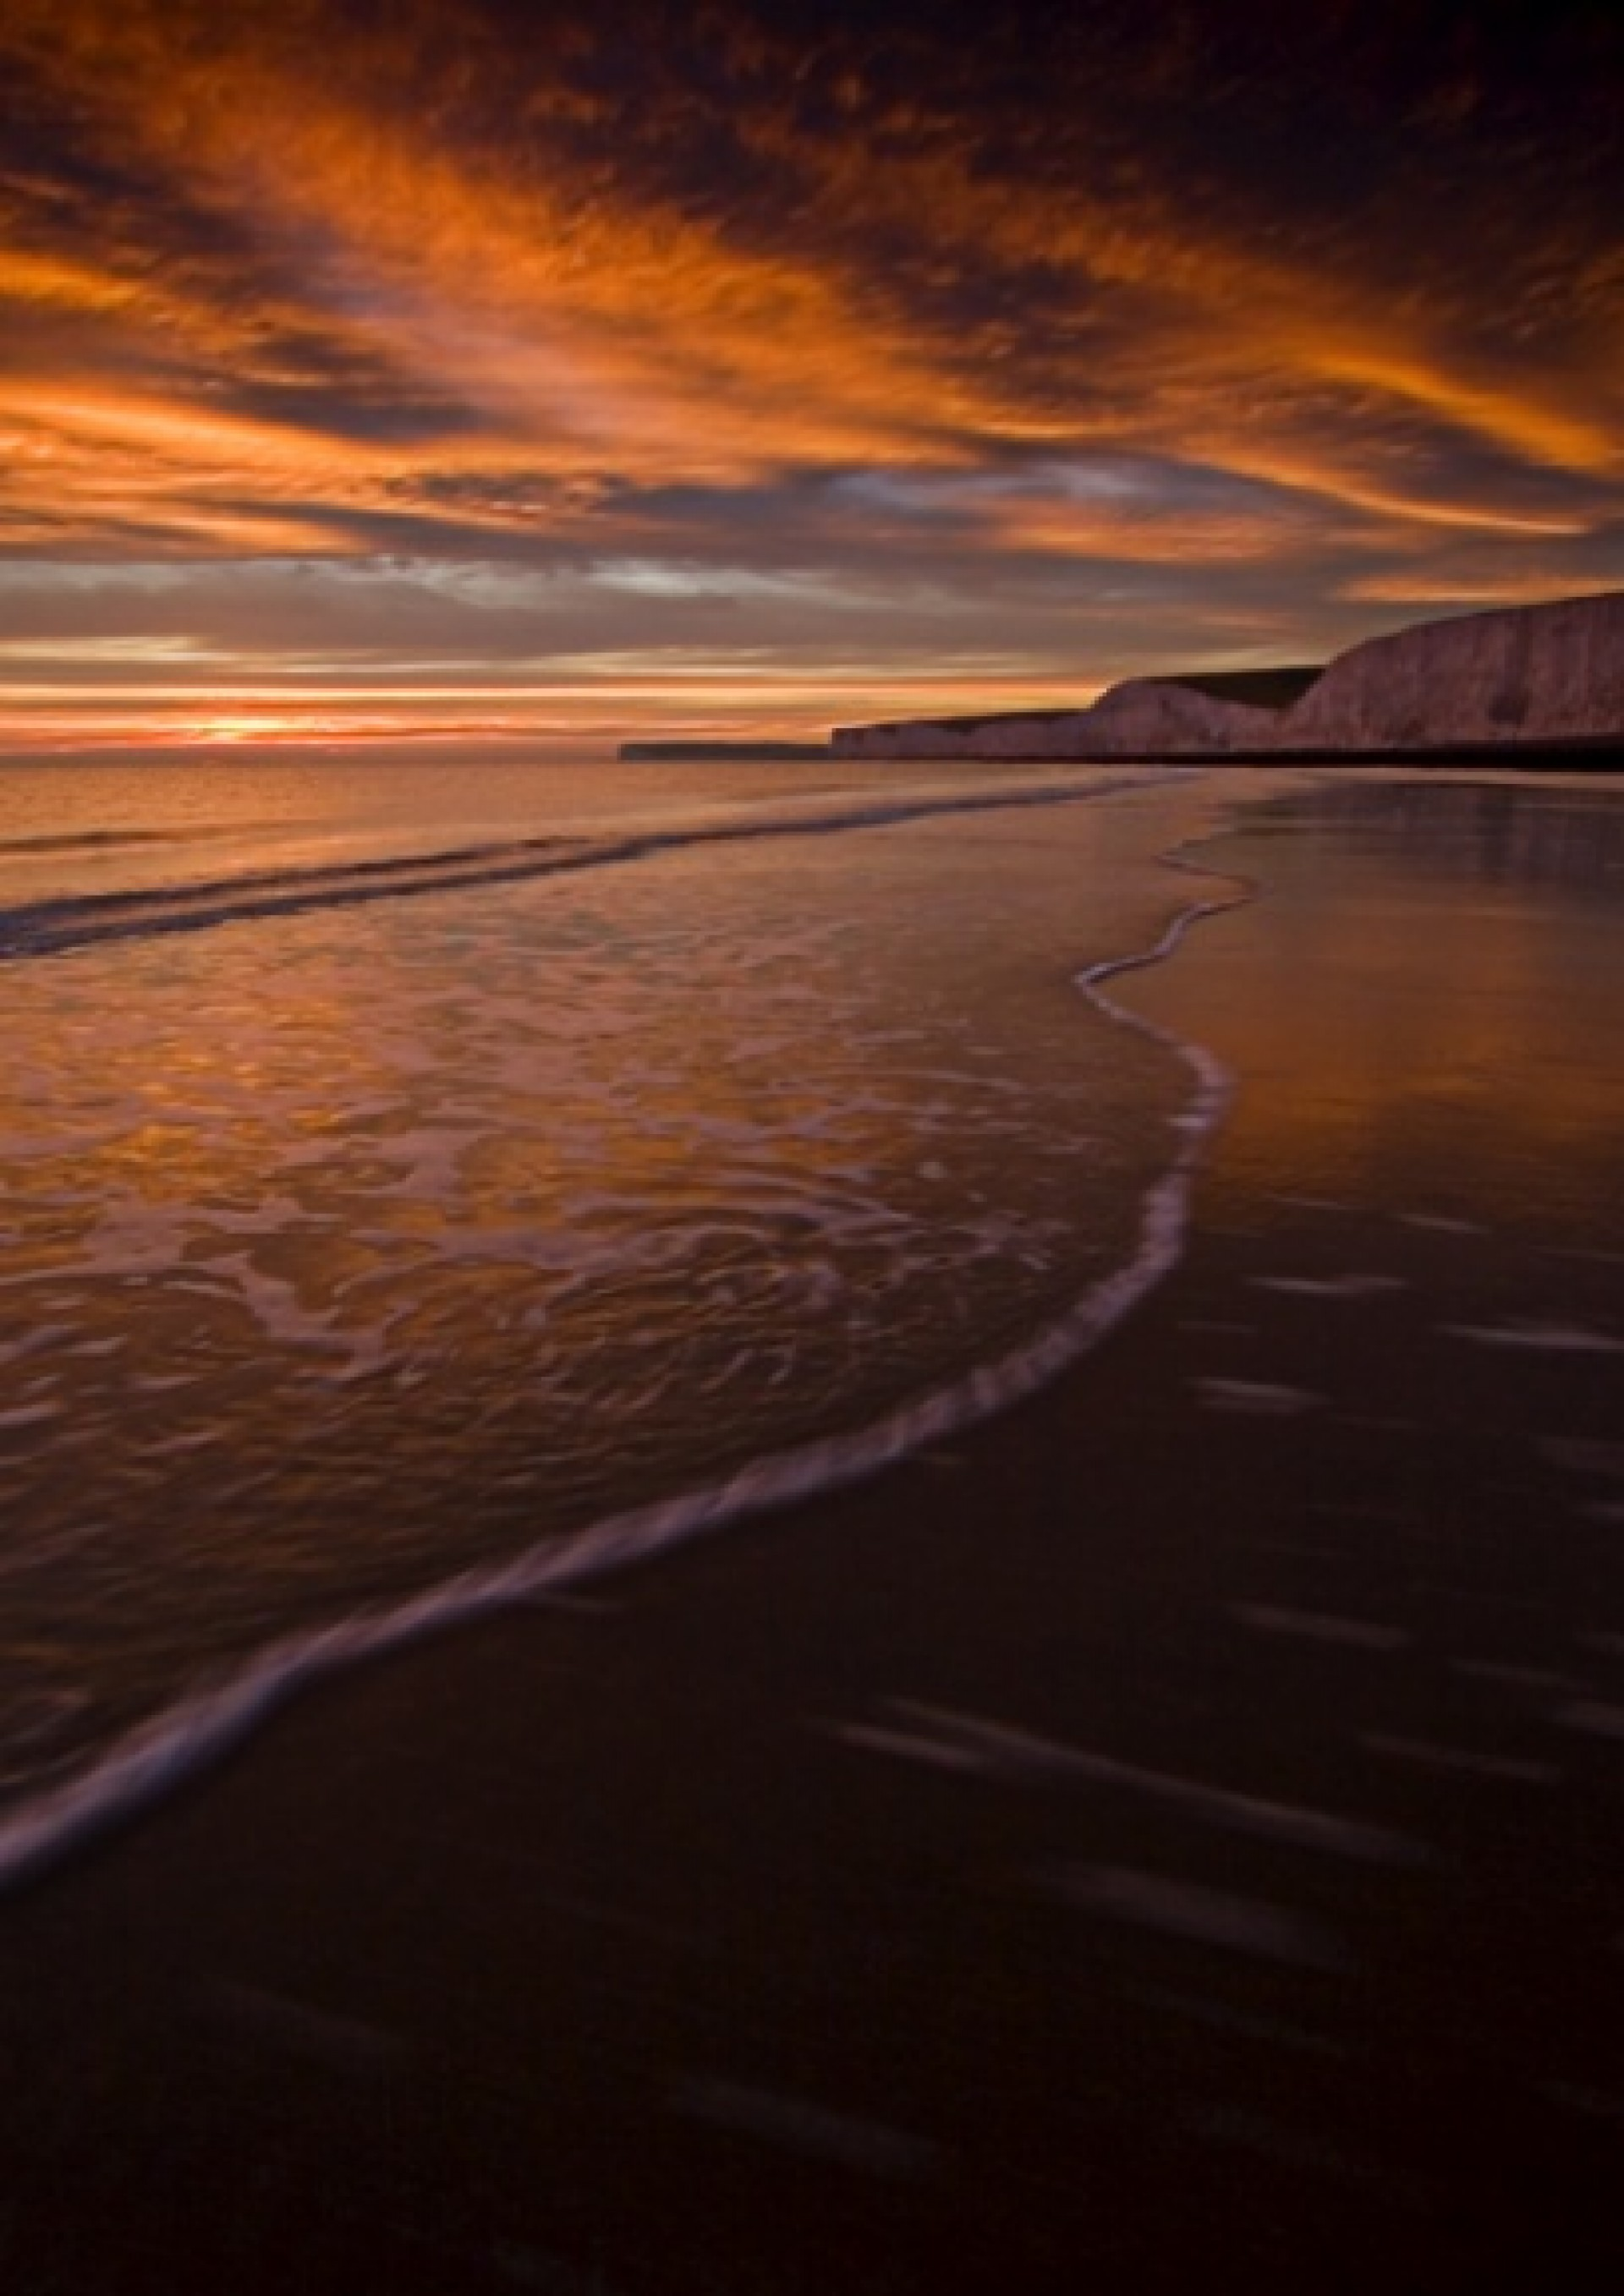 Dennis Reddick's photo of Birling Gap